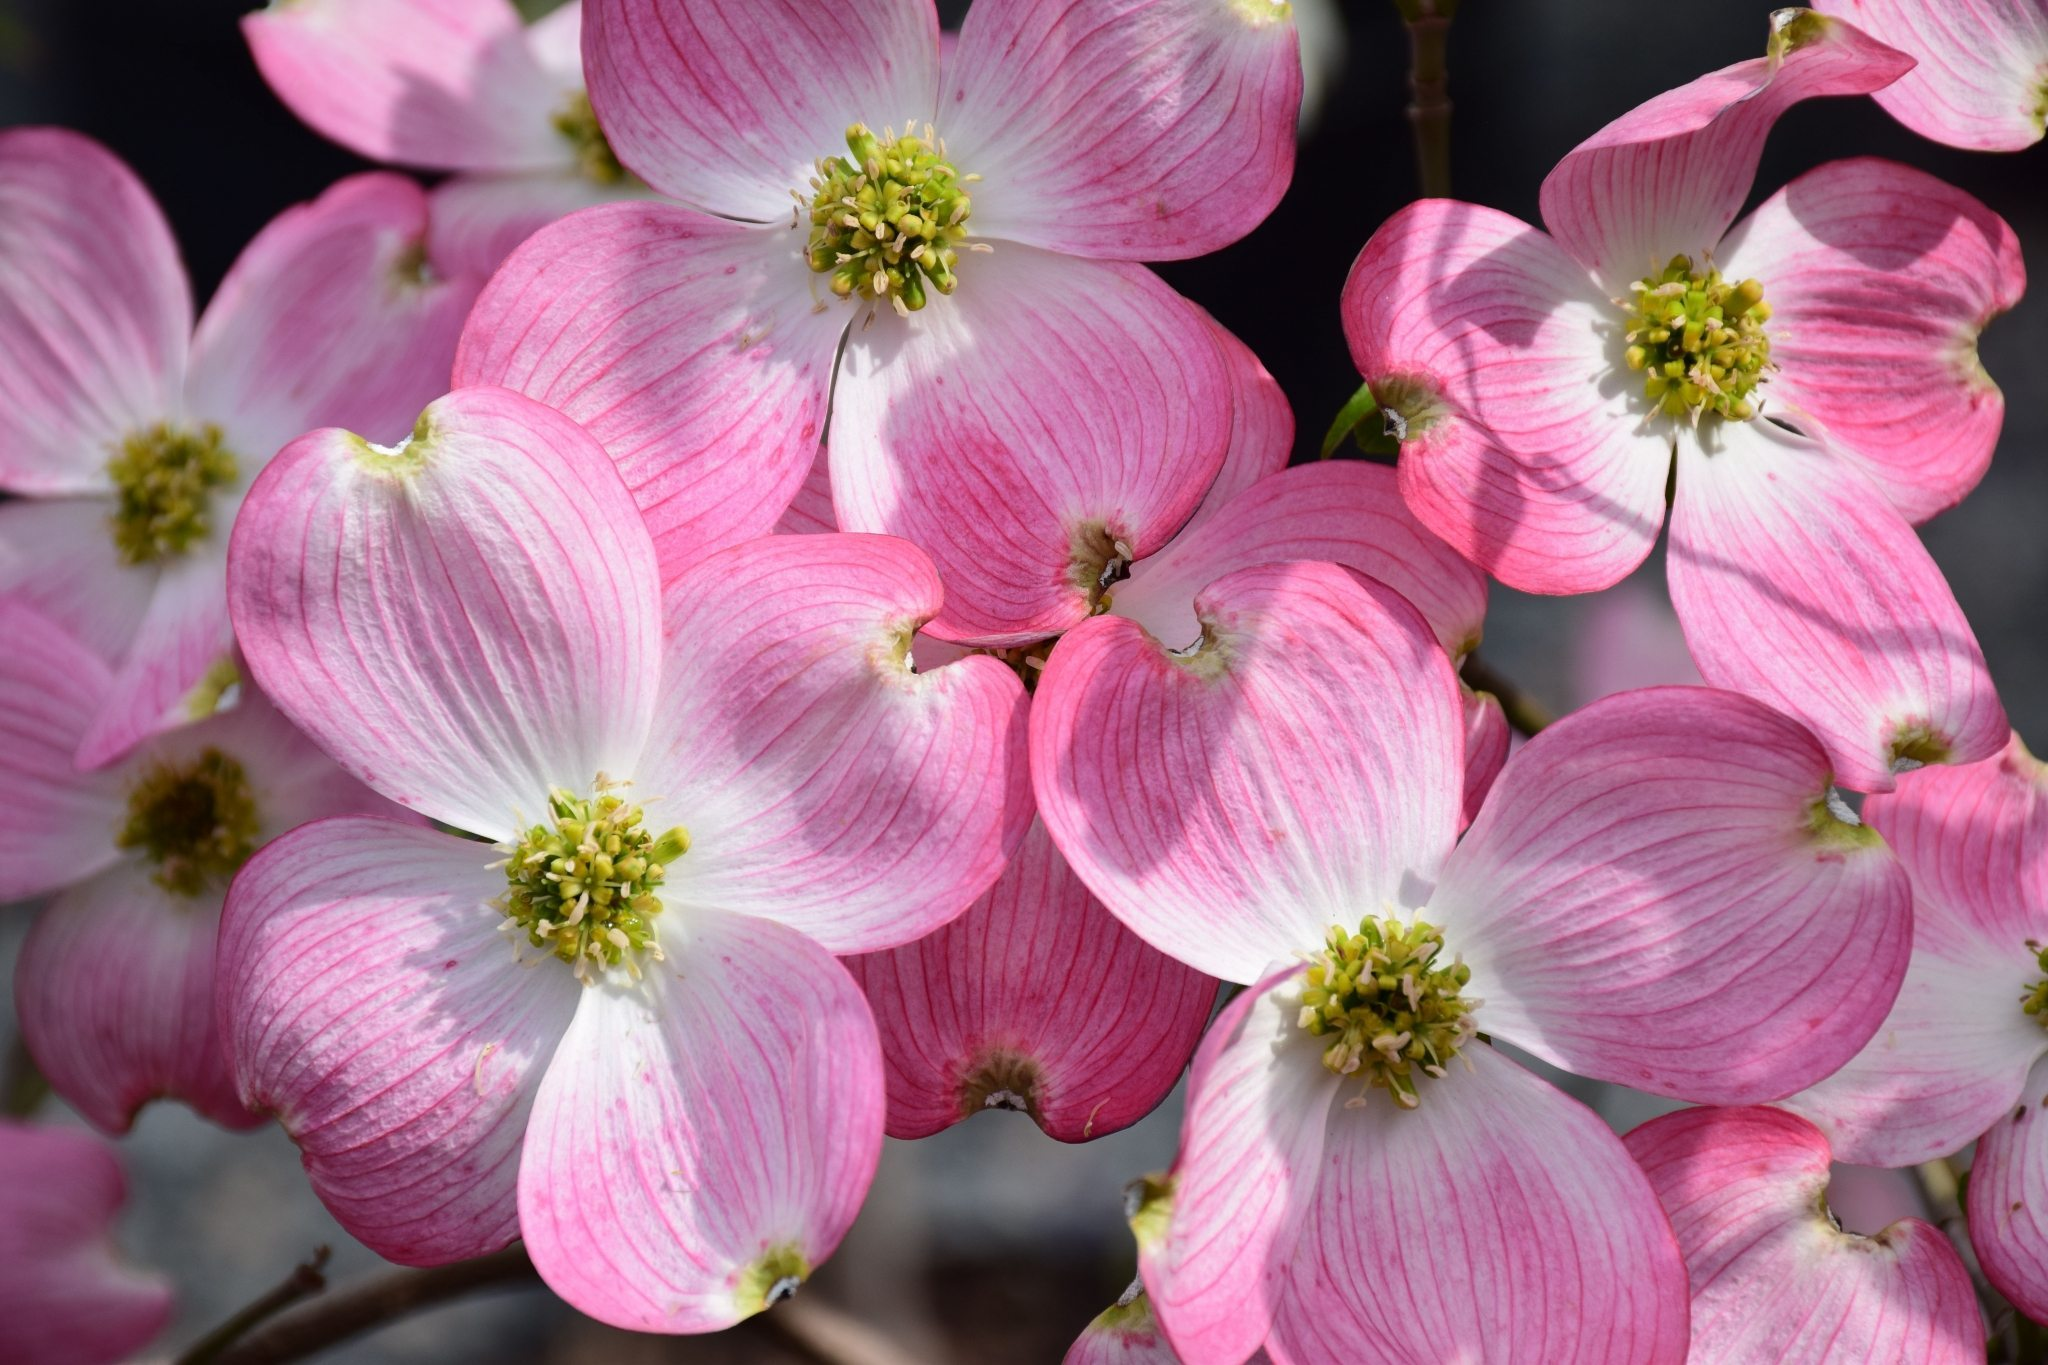 Dogwoods Merrifield Garden Center